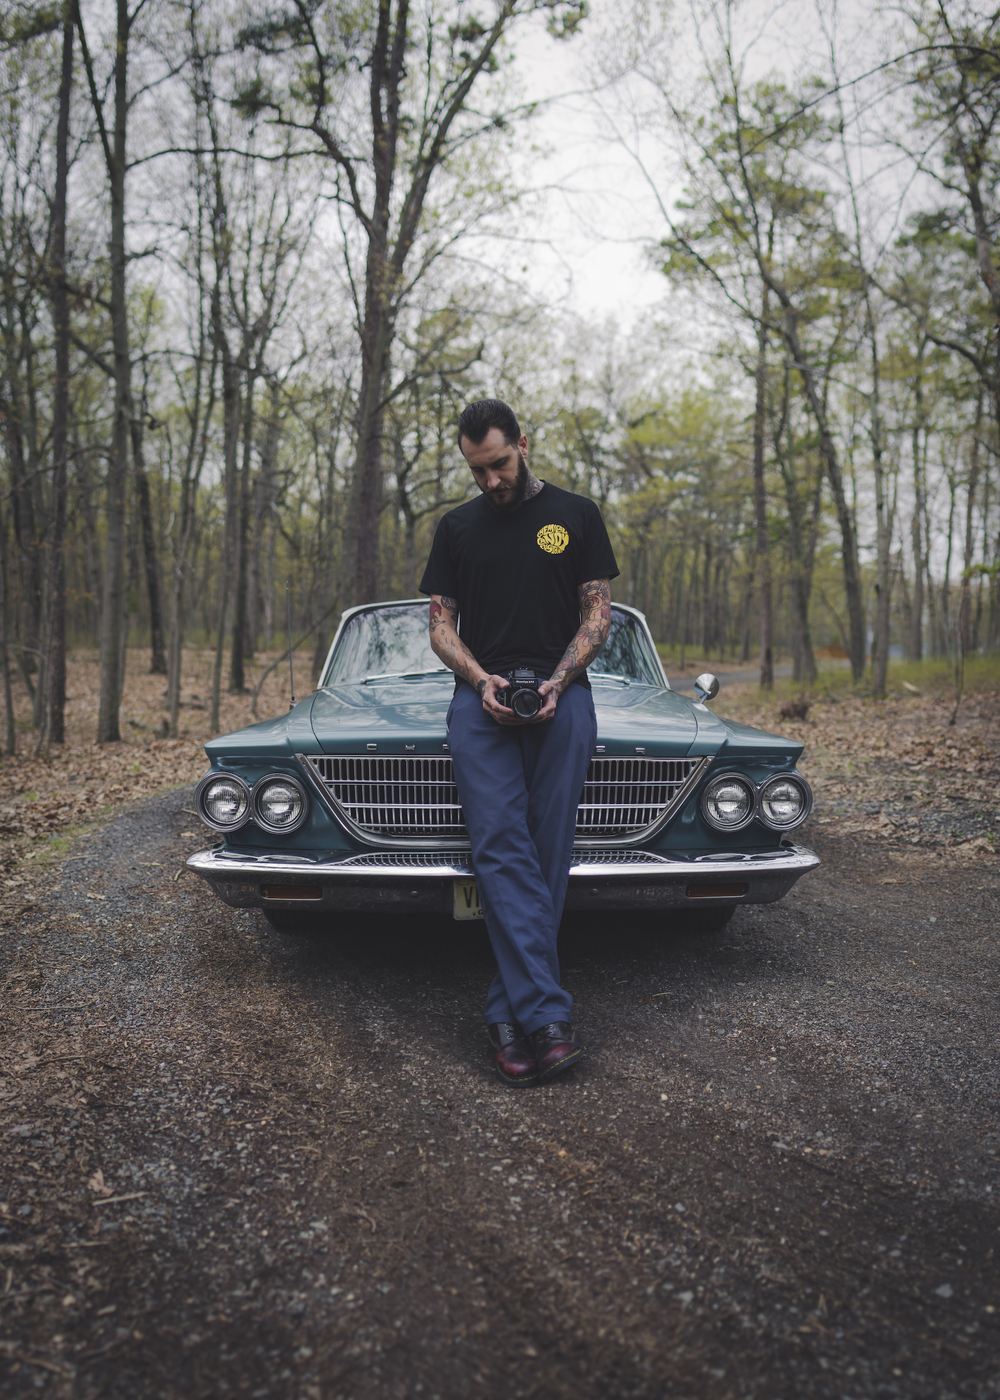 Myself with my 1963 Chrysler and one of my favorite cameras, my 1975 Mamiya M645 with a 150mm f/2.8